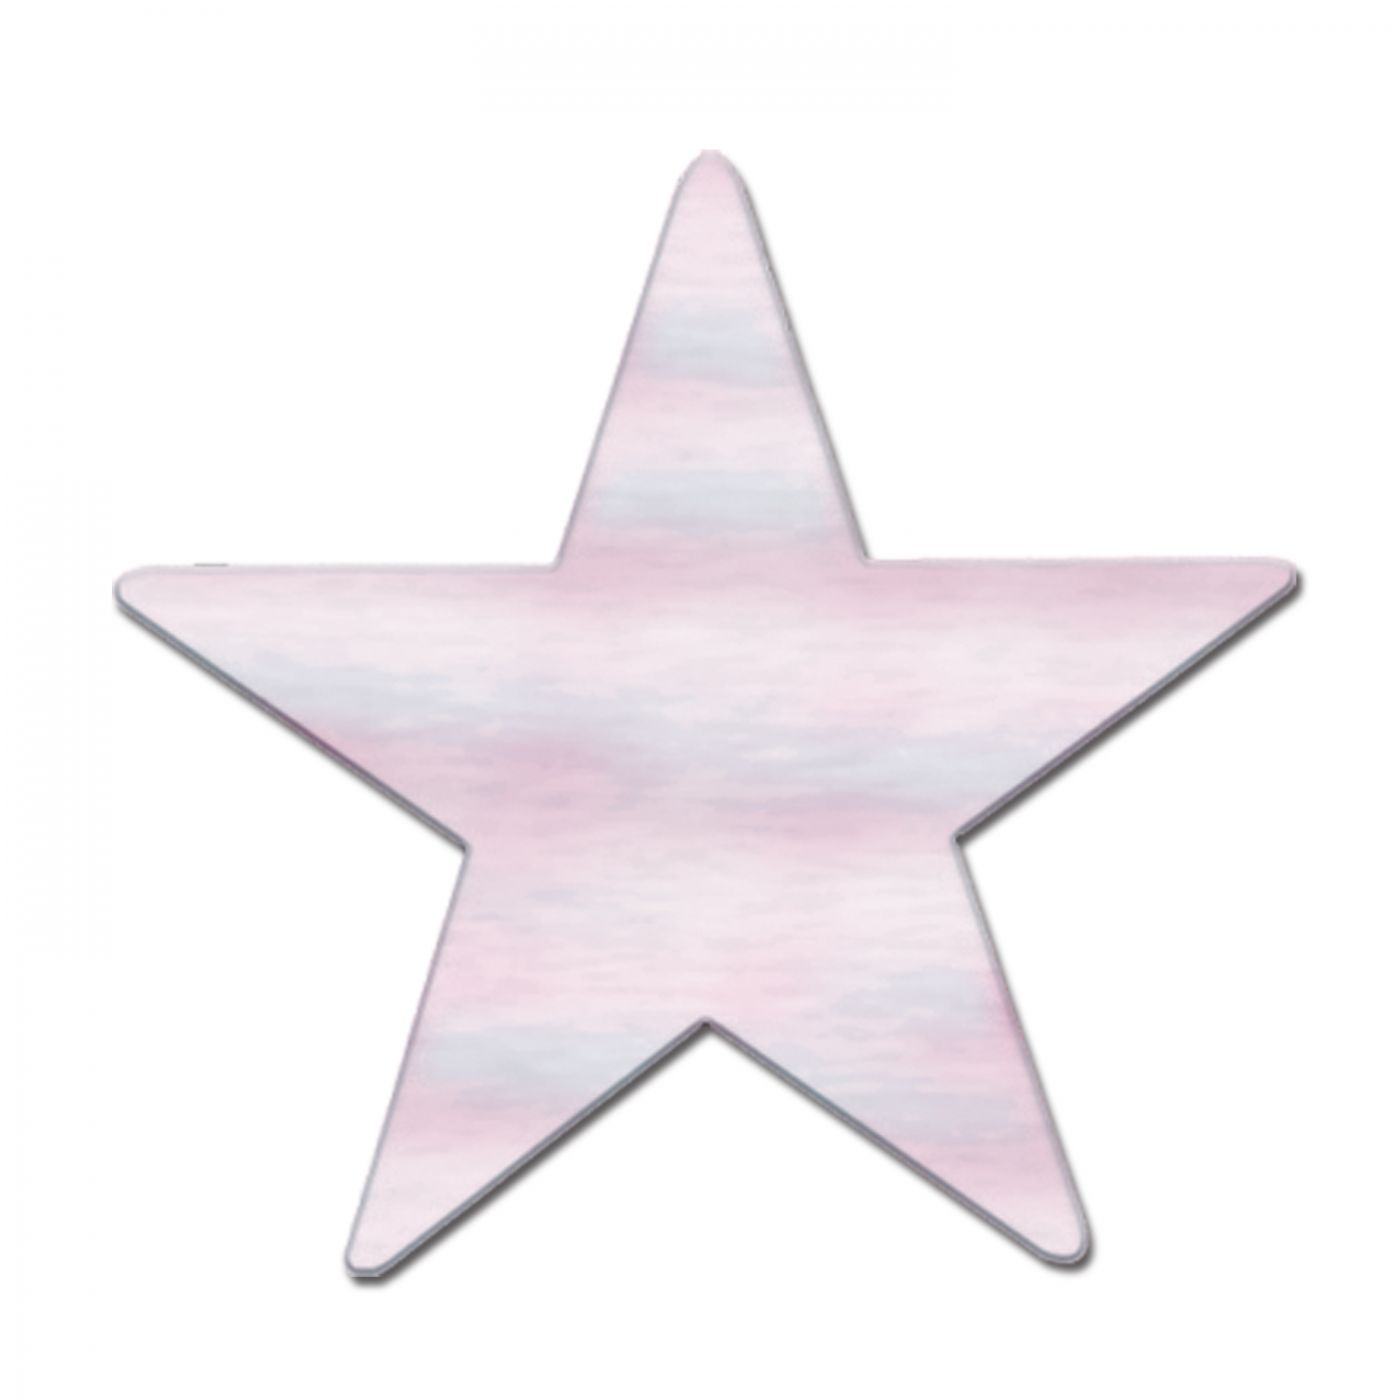 Opalescent Star Cutout (24) image